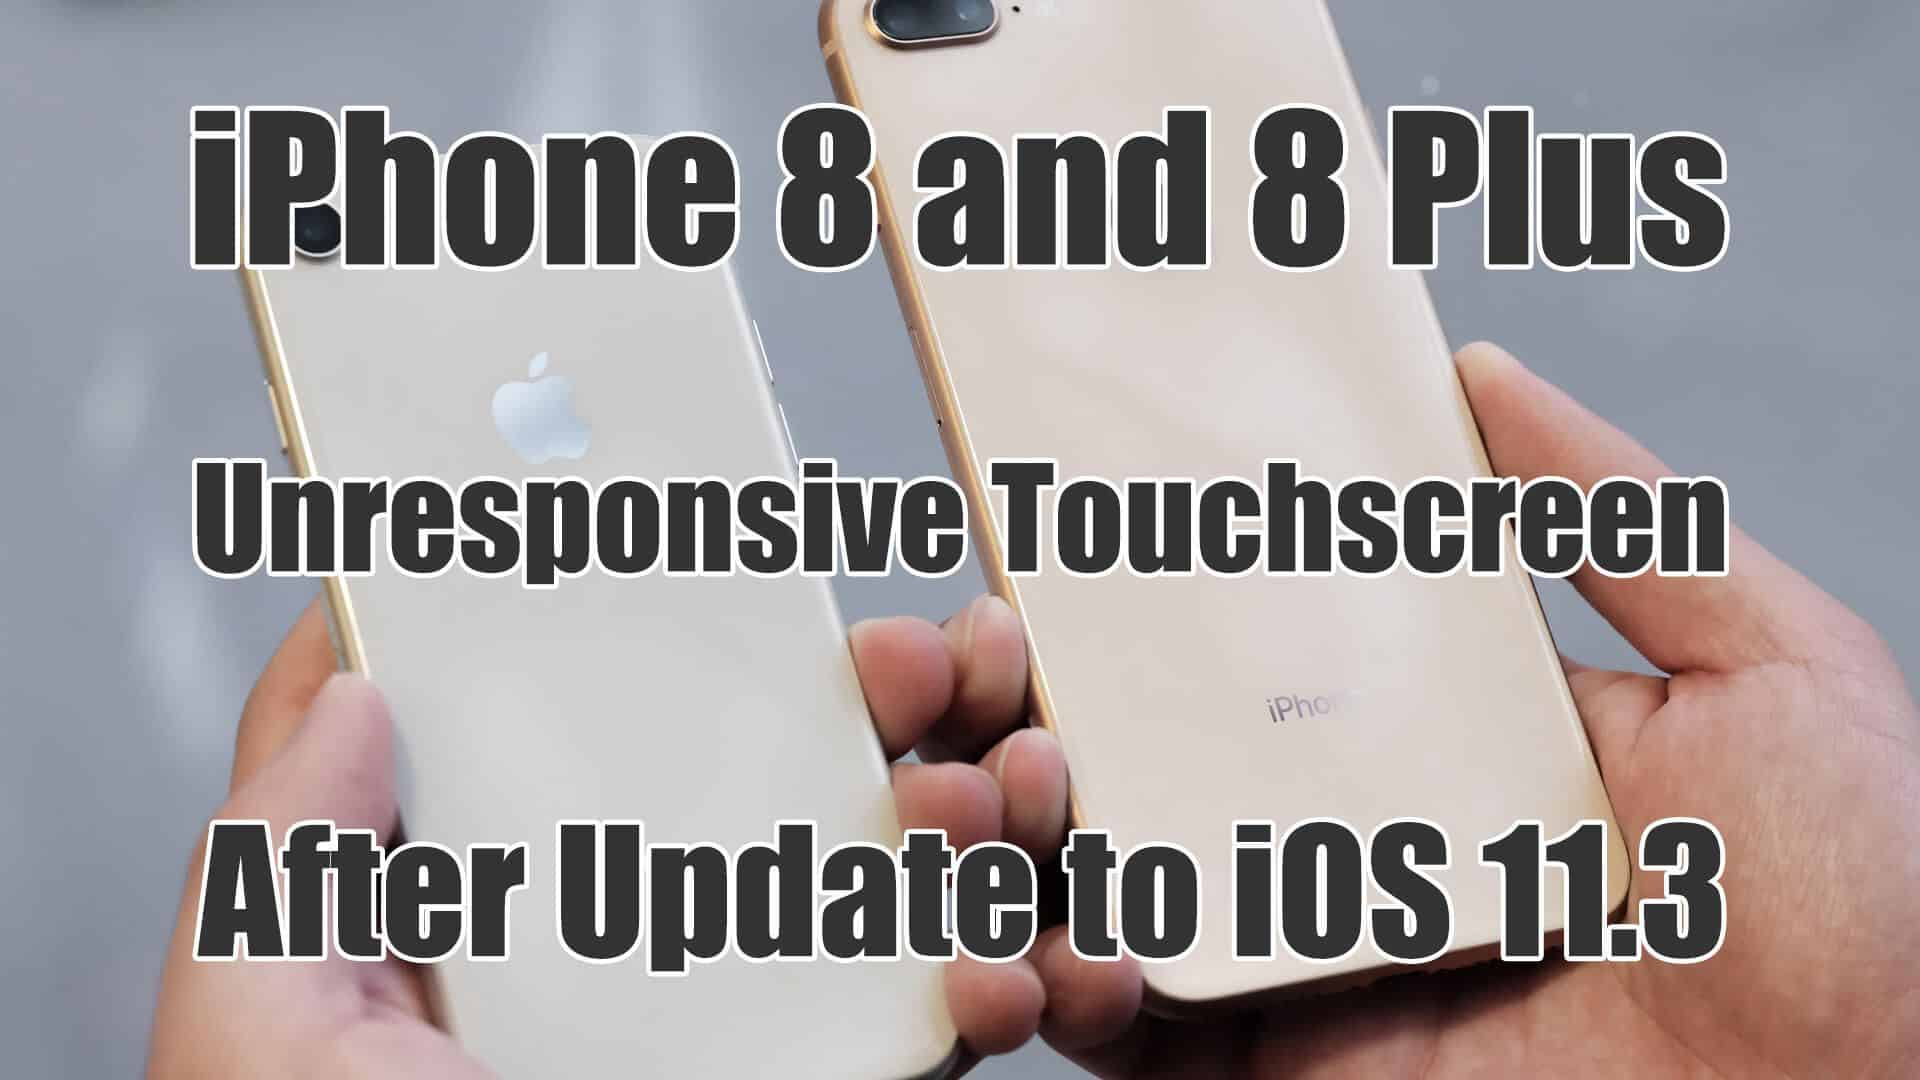 iPhone 8 and 8 Plus Unresponsive Touchscreen After Update ...